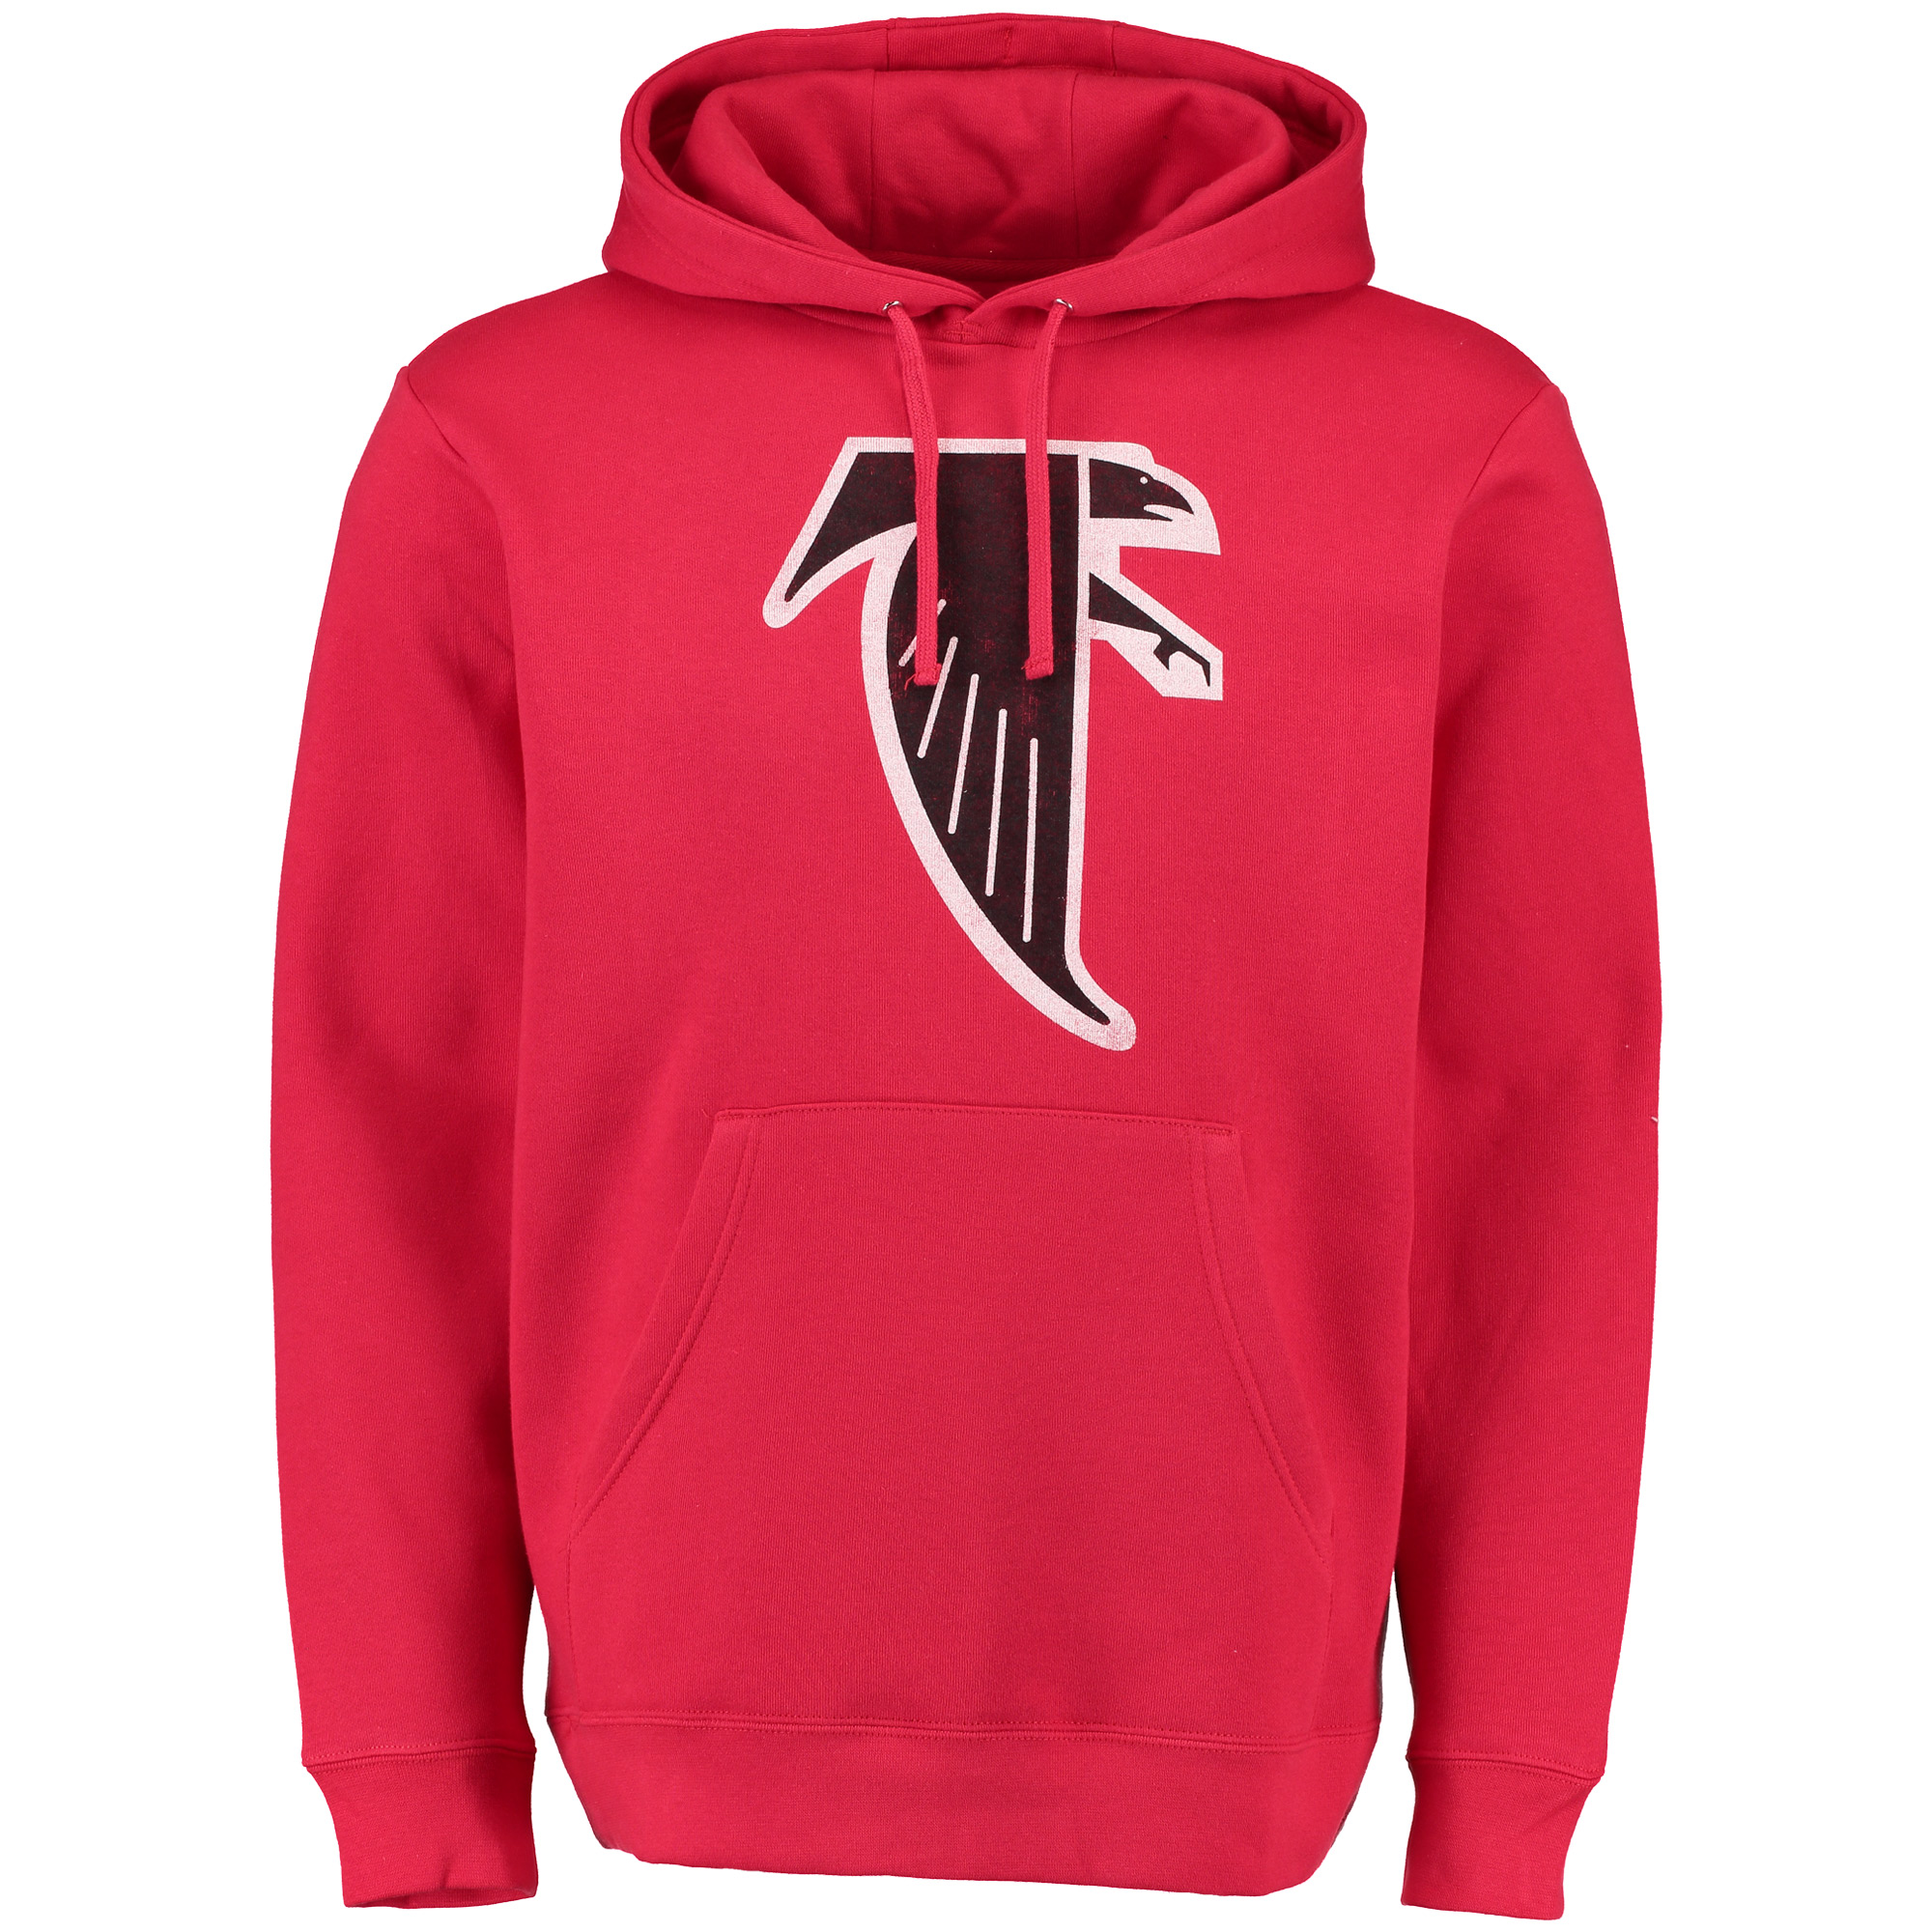 a61a725c Atlanta Falcons NFL Pro Line Throwback Logo Pullover Hoodie Sweatshirt - Red